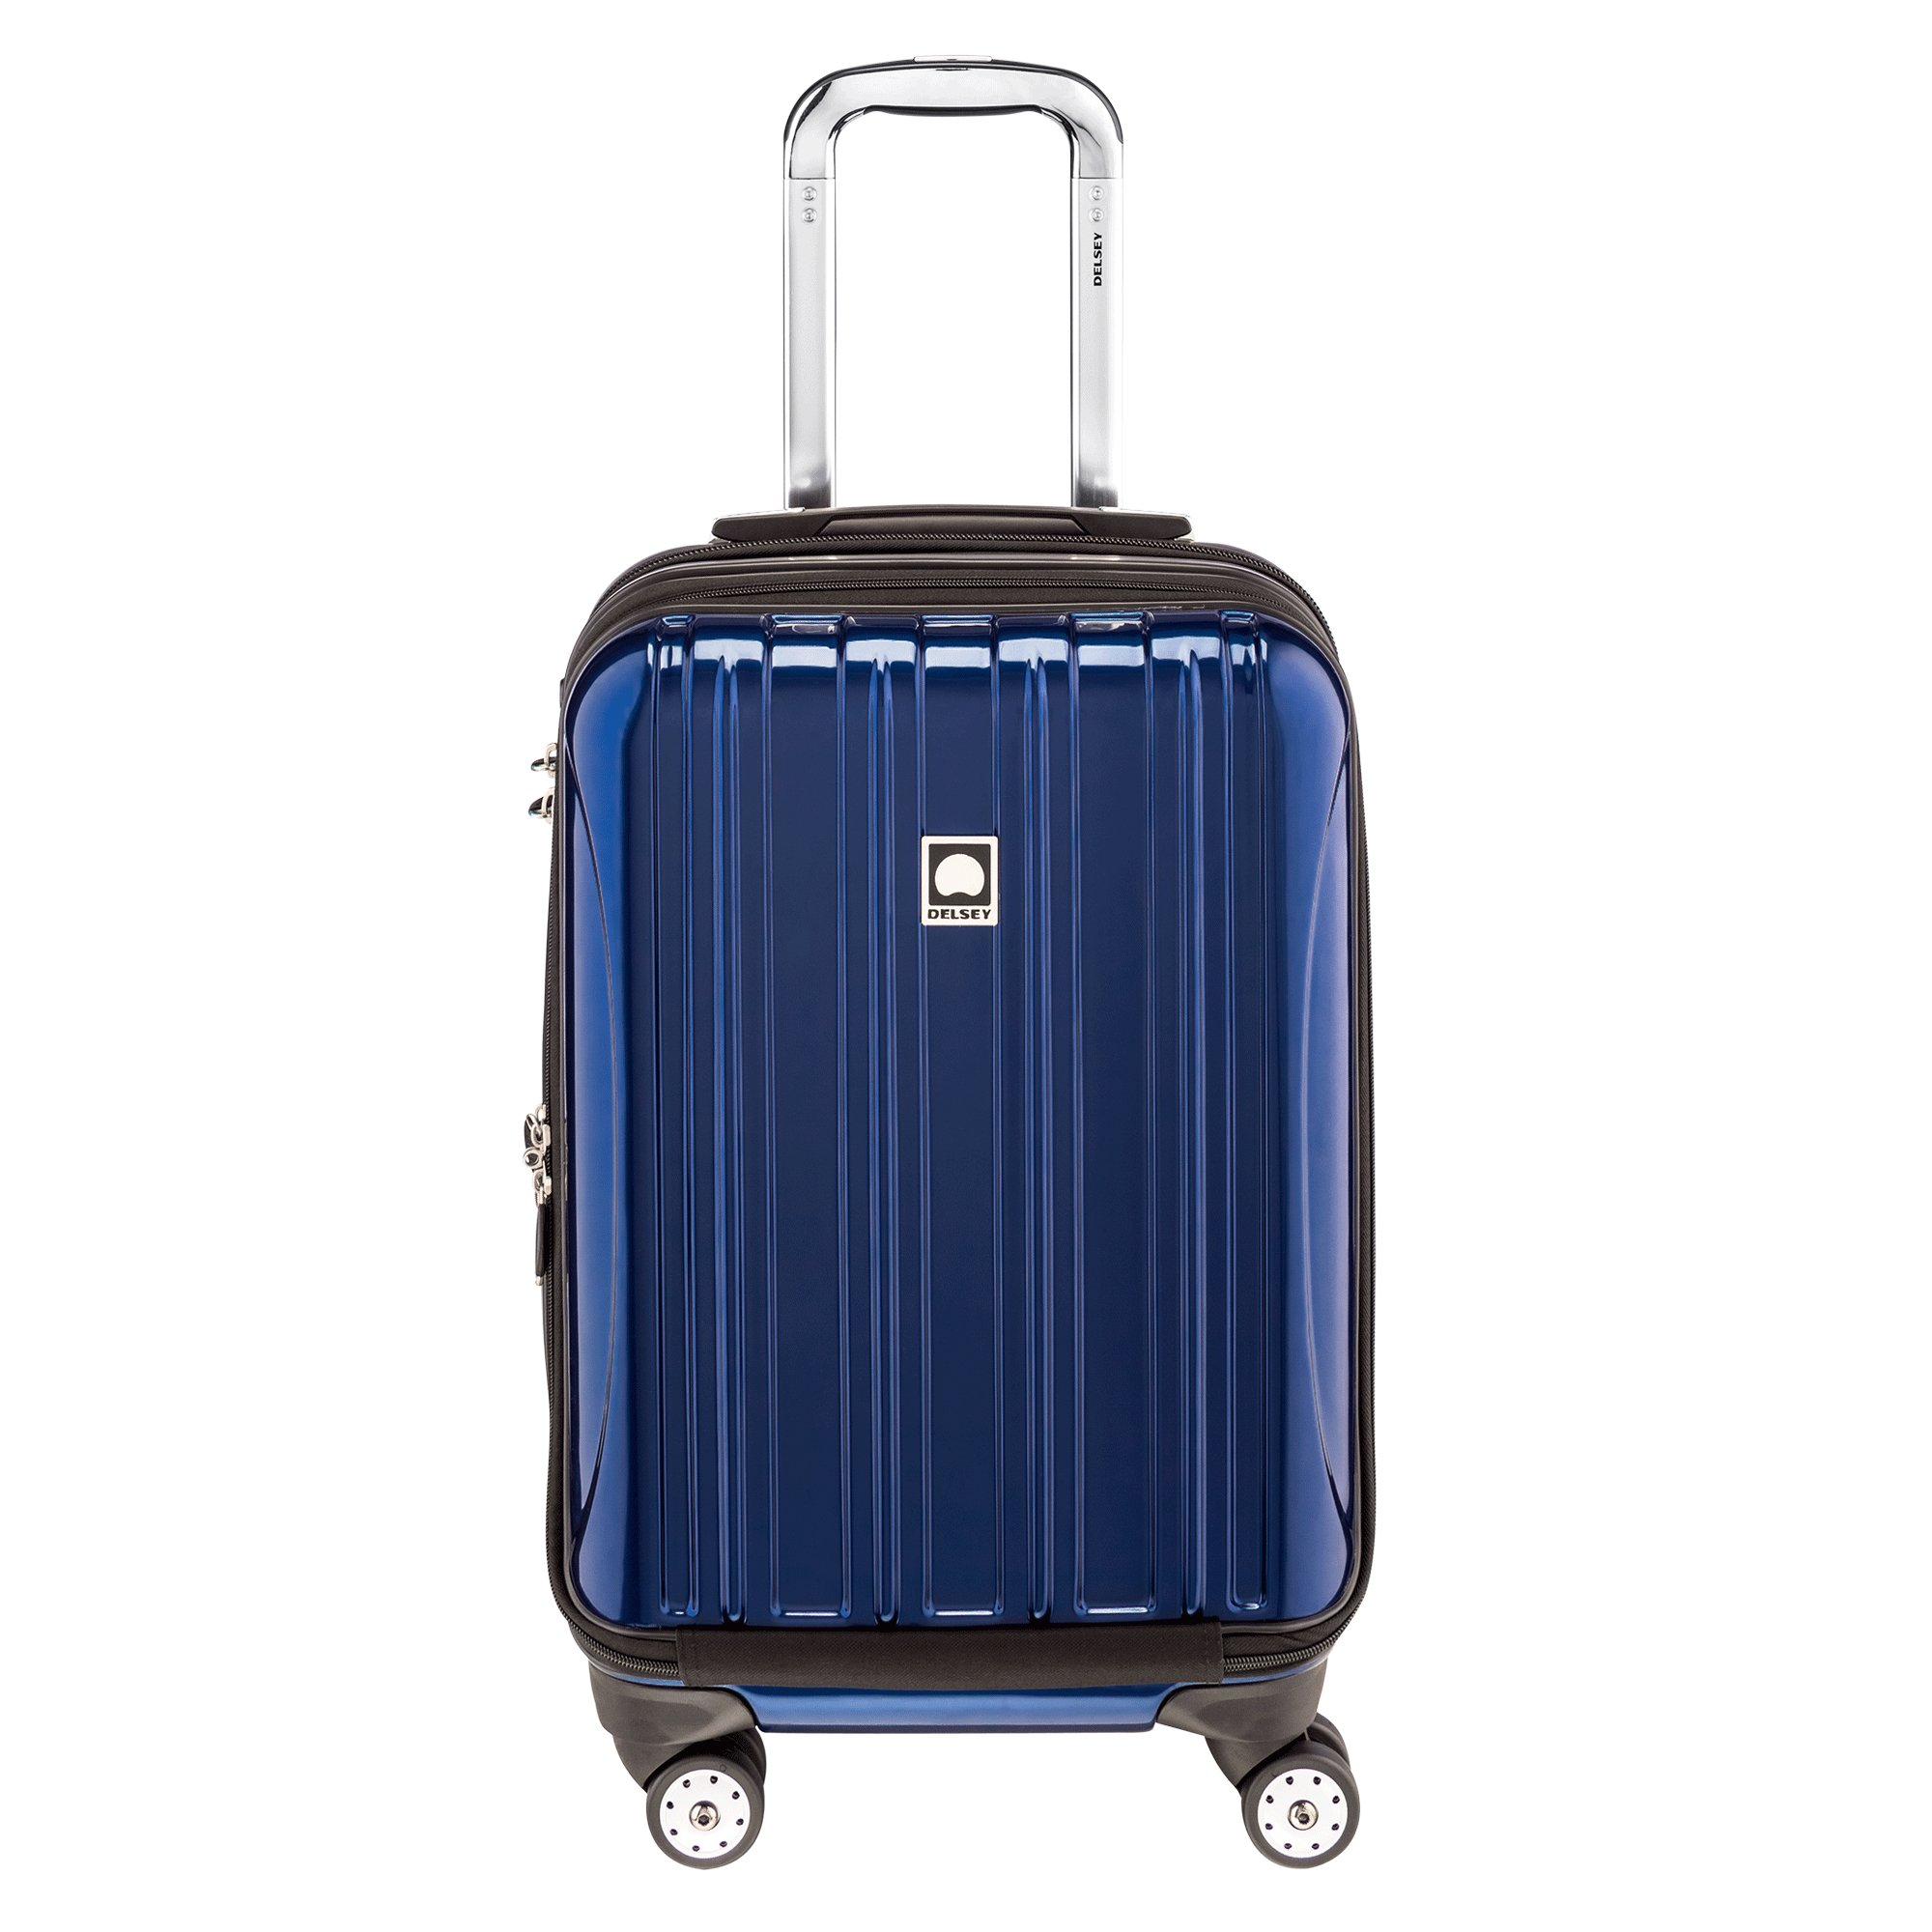 Delsey Luggage Helium Aero International Carry On Expandable Spinner Trolley, Cobalt Blue